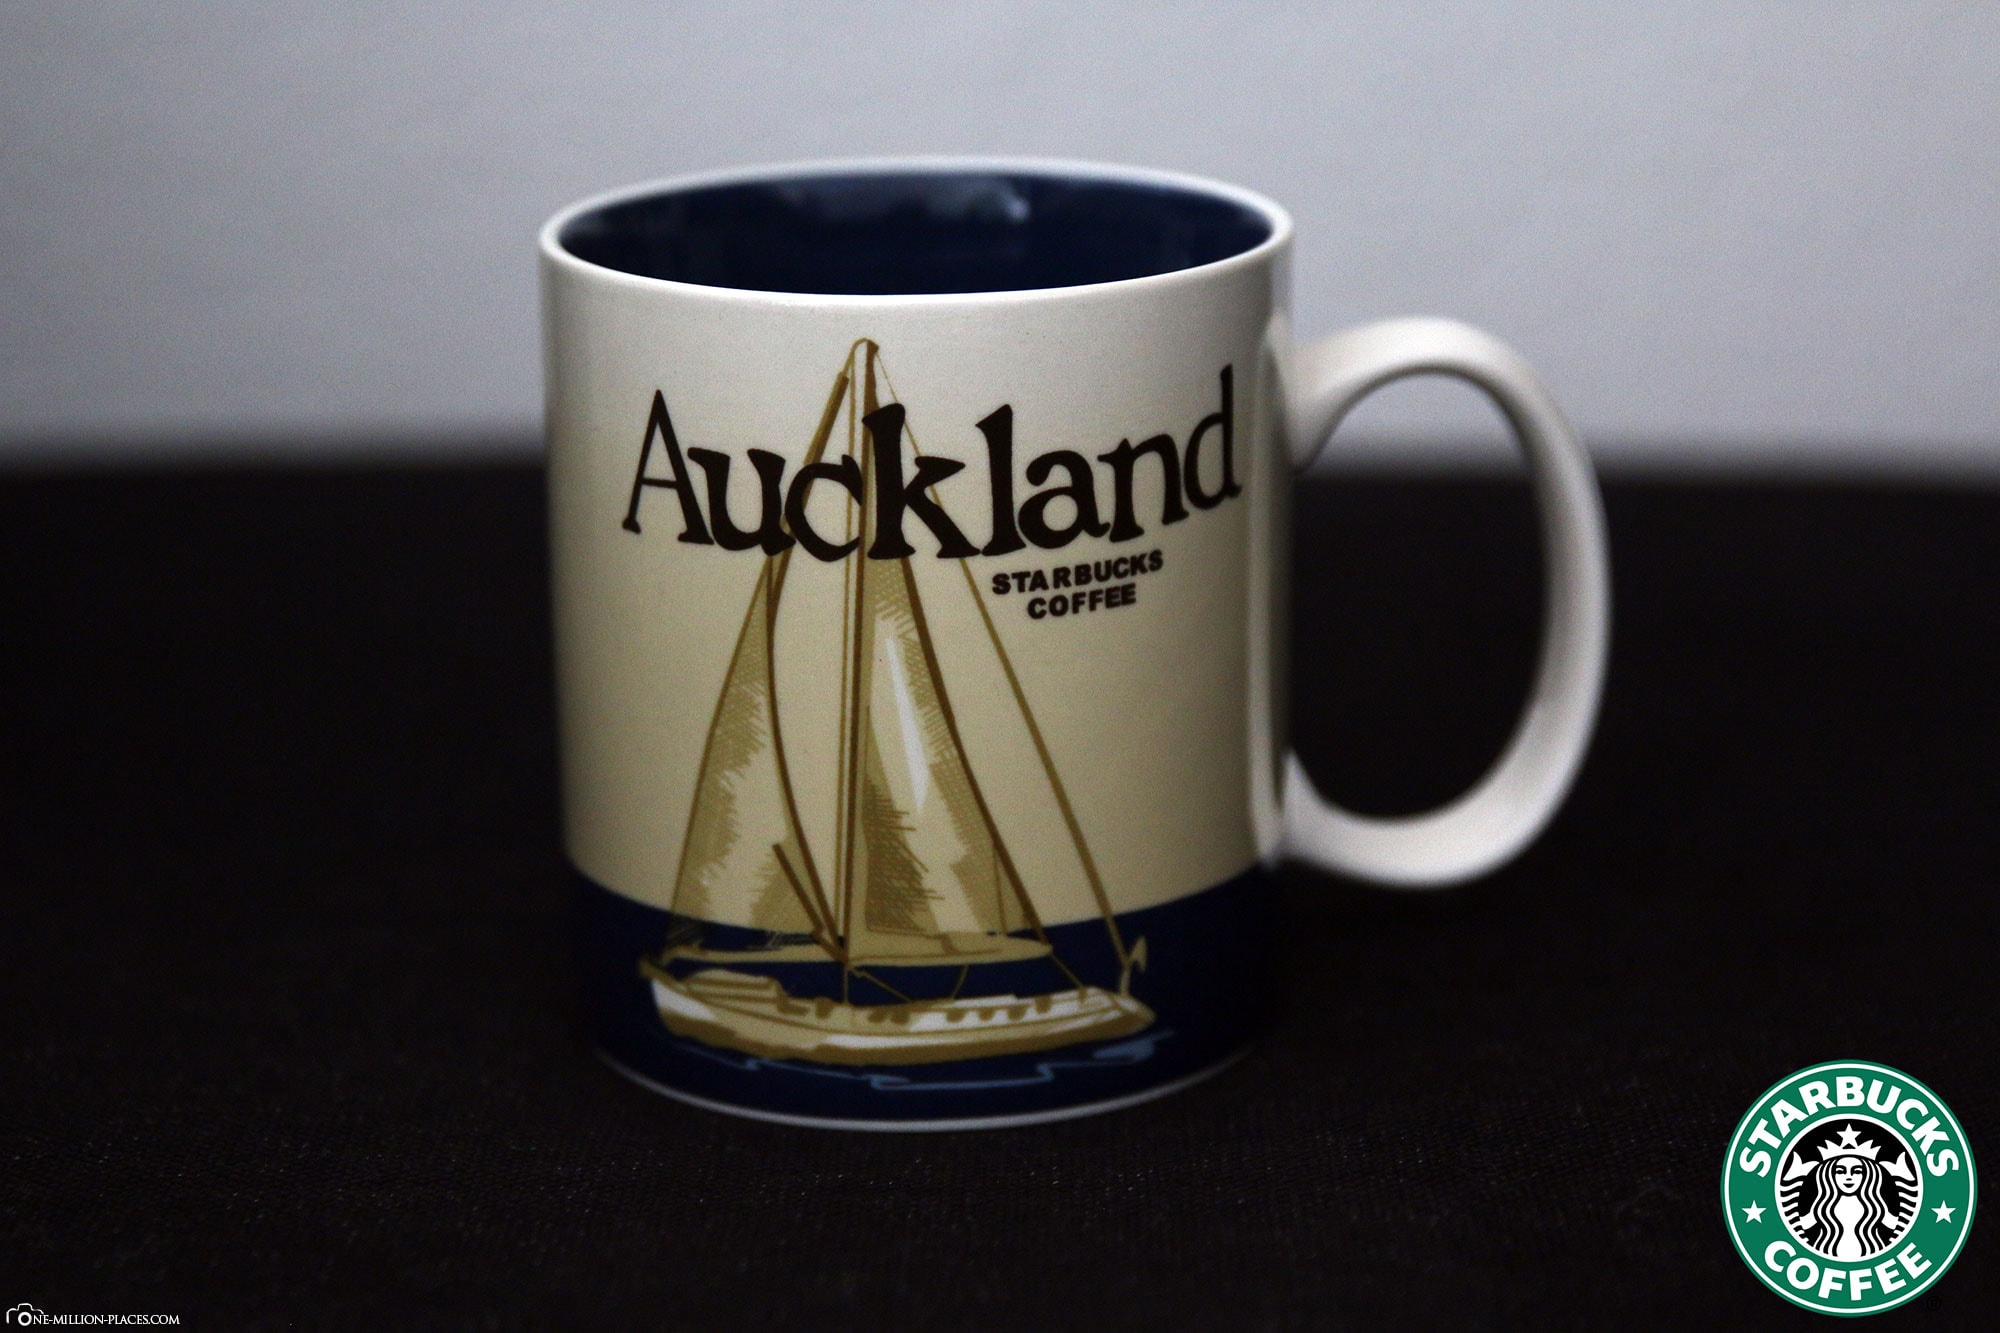 Auckland, Starbucks Cup, Global Icon Series, City Mugs, Collection, New Zealand, Travelreport